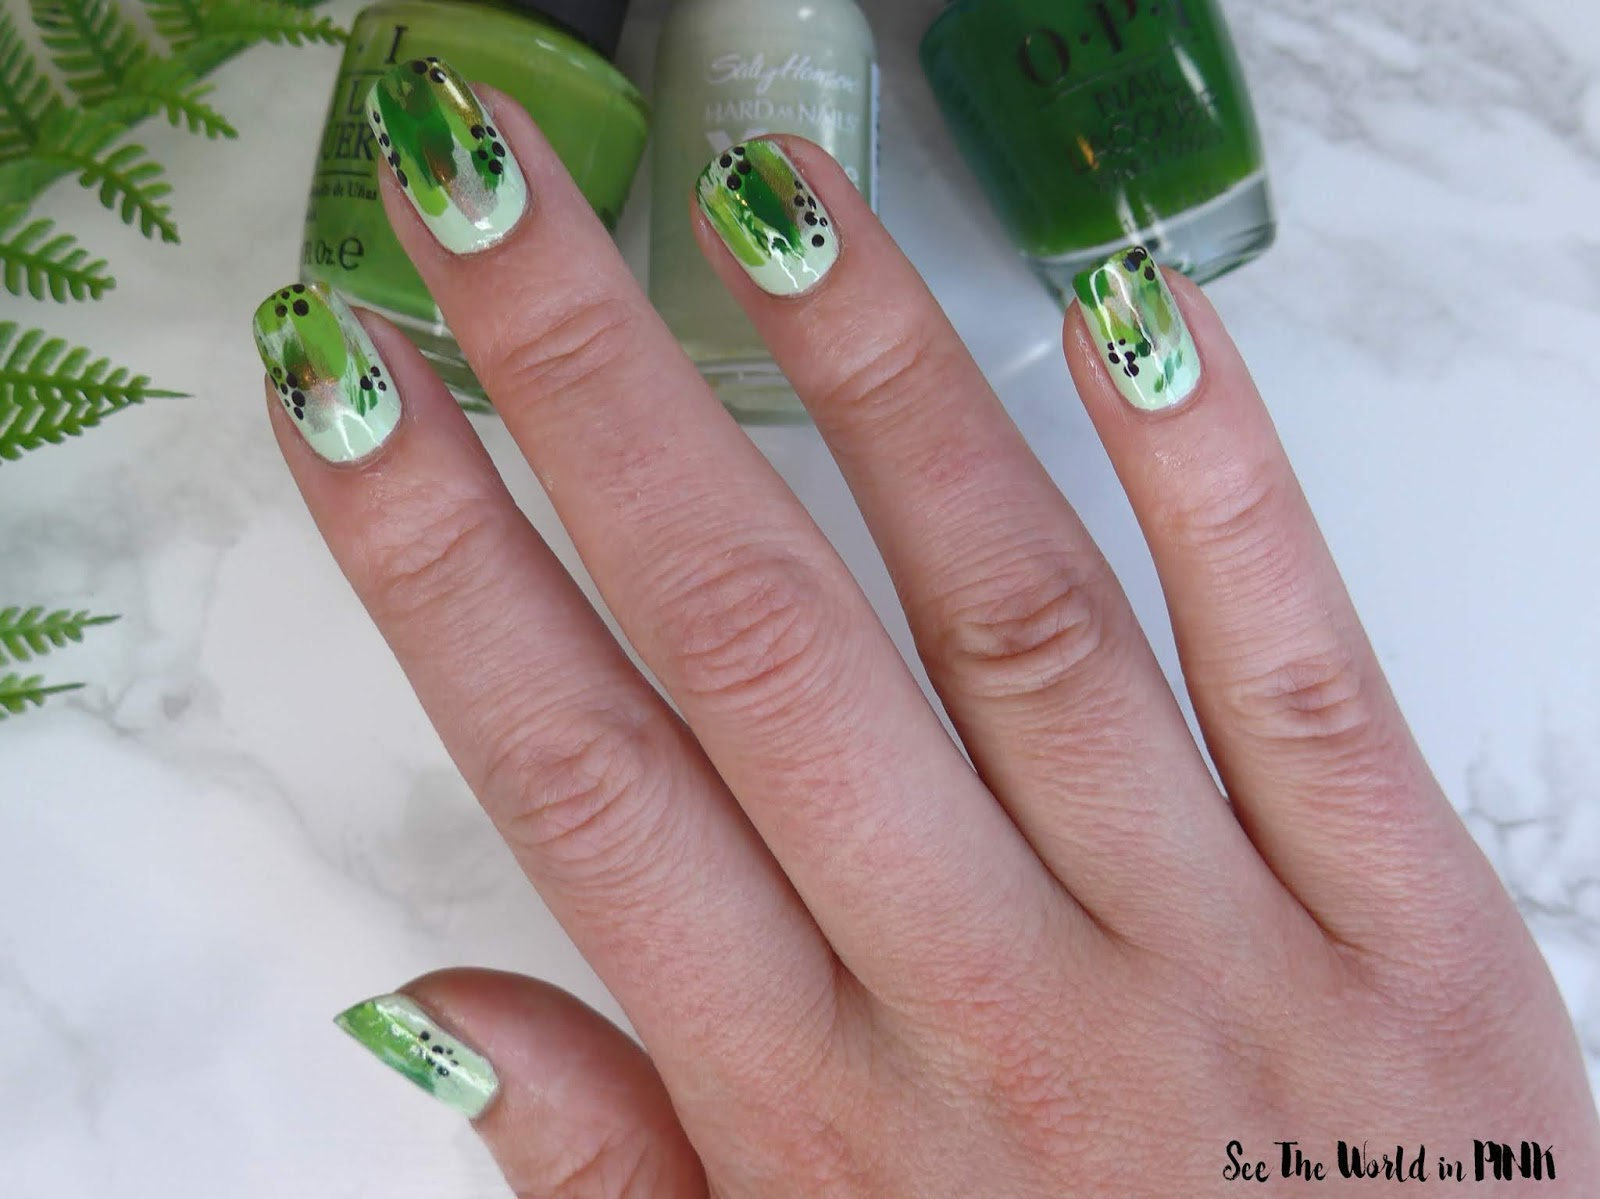 Manicure Monday - Green Abstract Nail Art